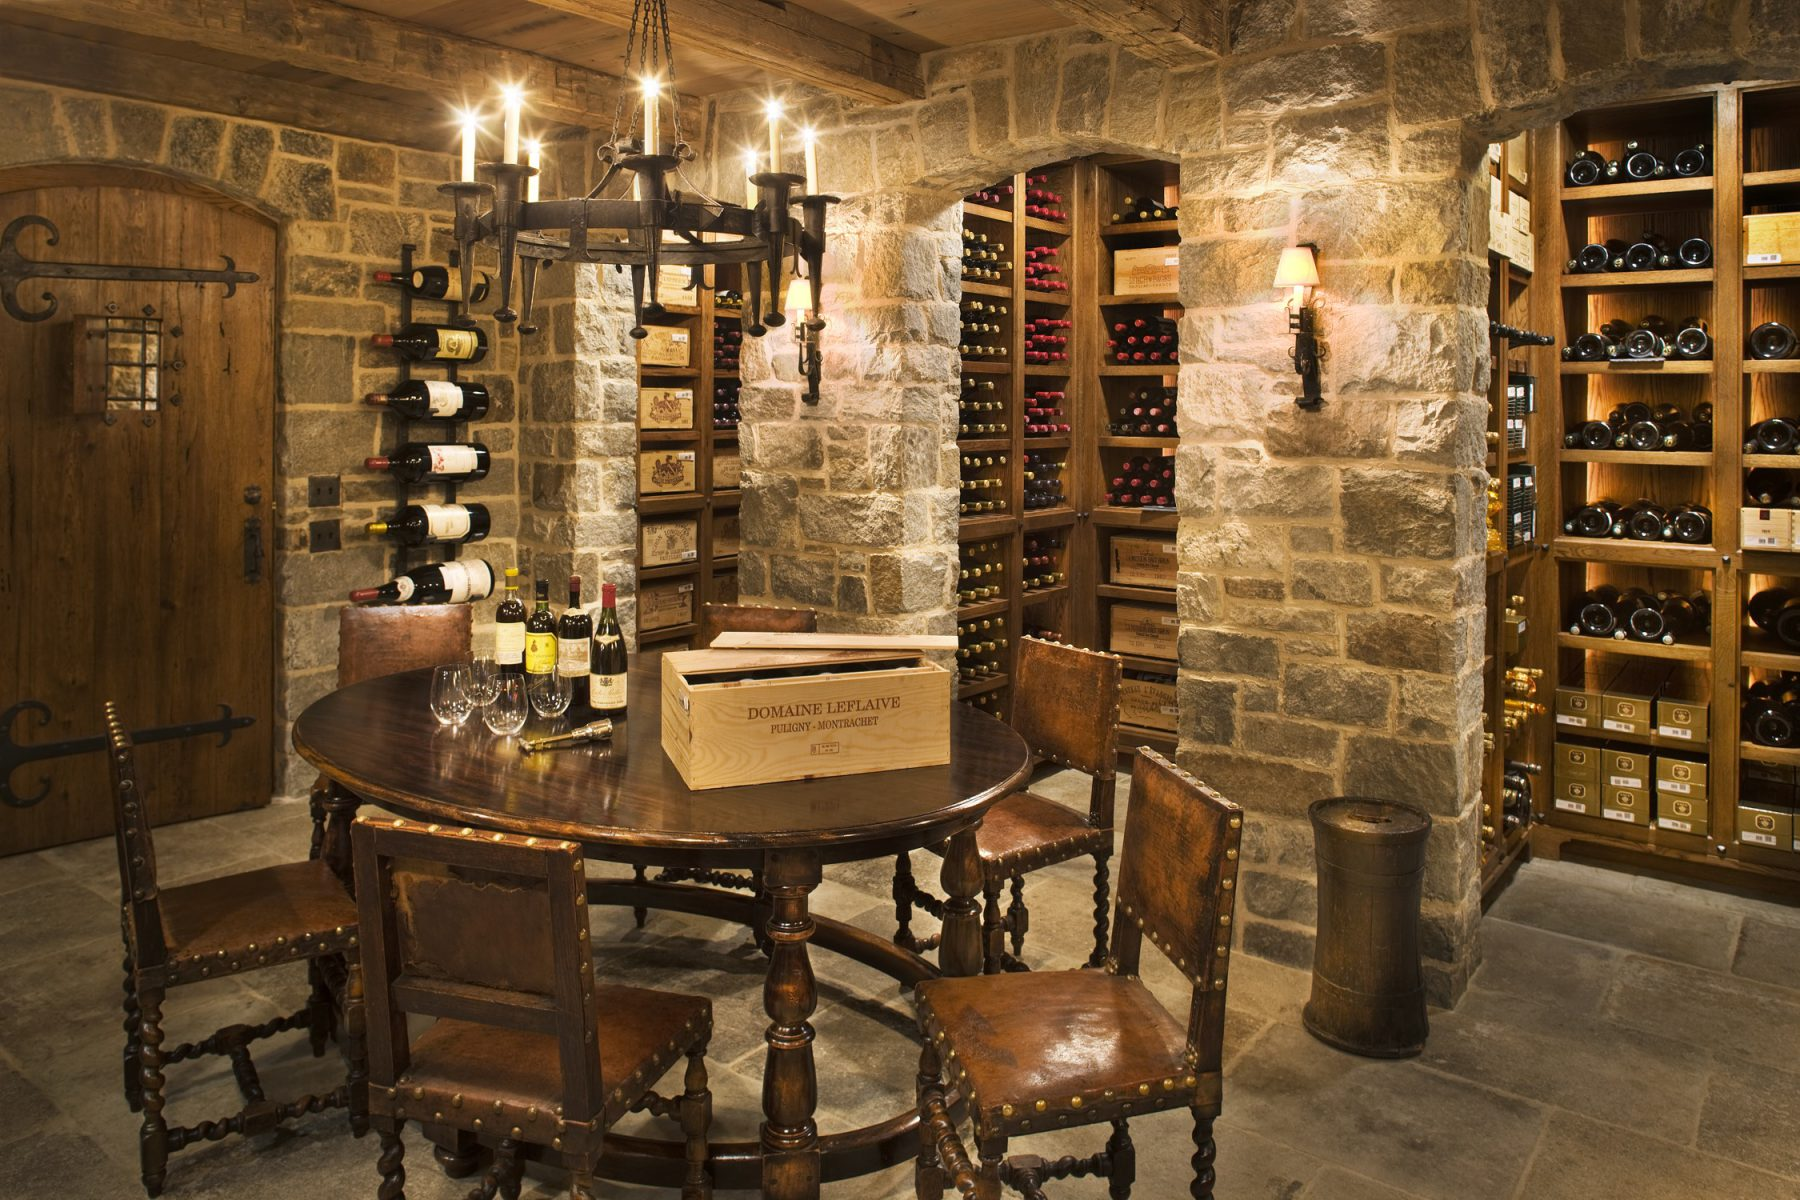 Wine Cellar Furniture Inside New Wine Cellar Gp Schafer Architects